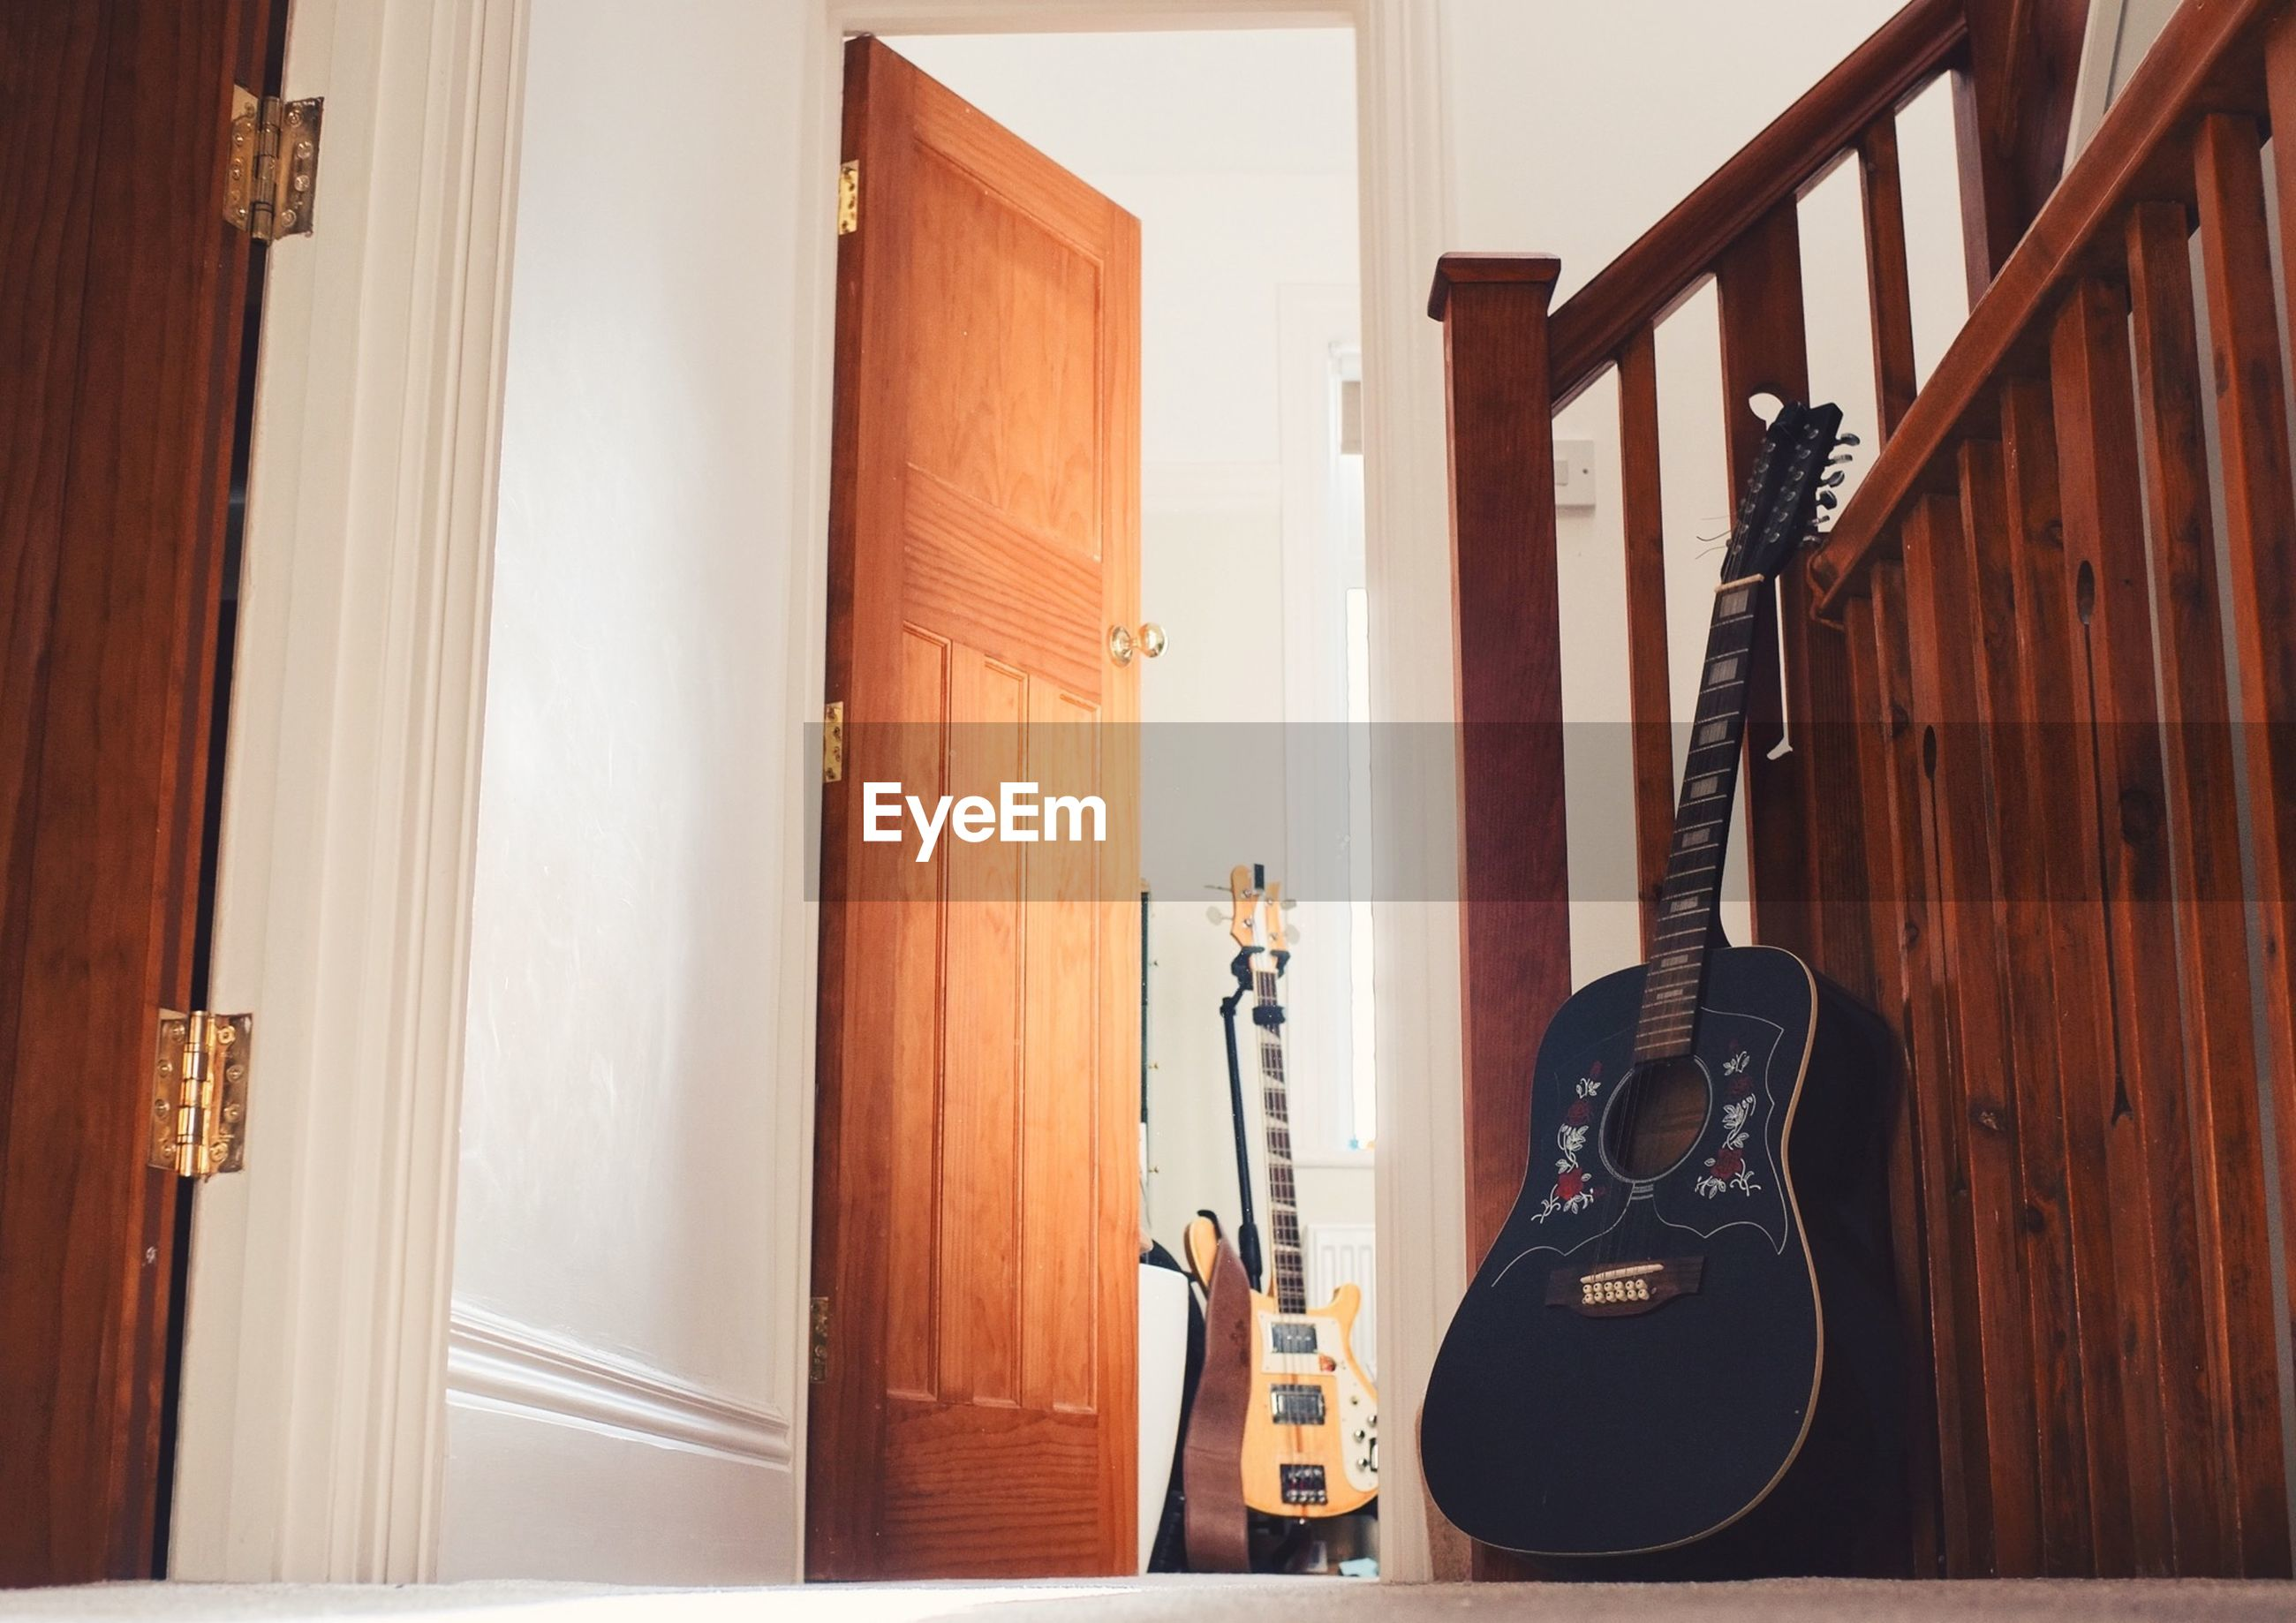 Guitar by wooden railing at home